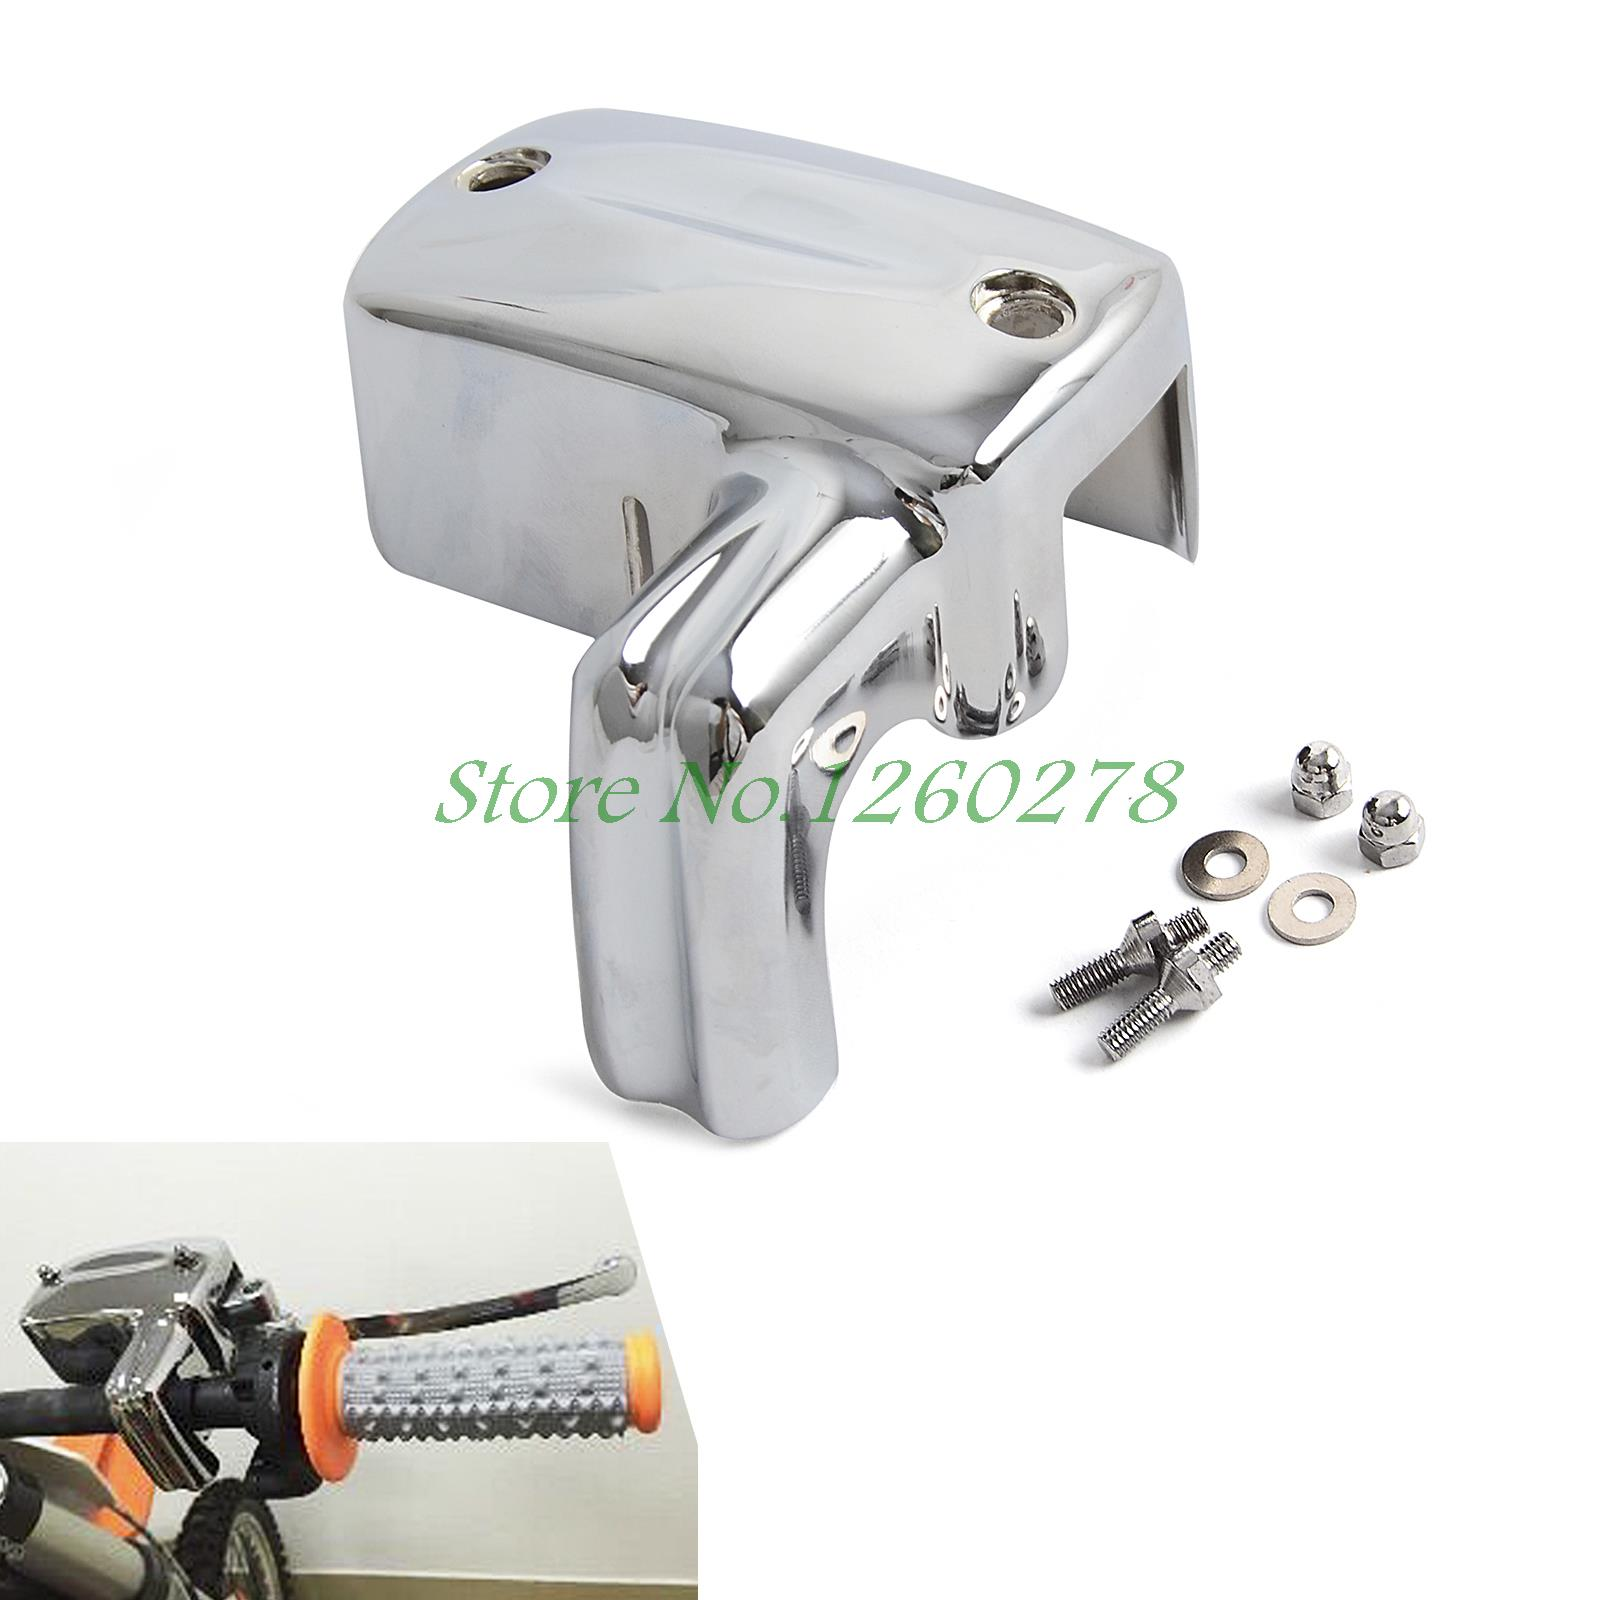 Motorcycle Brake Master Cylinder Cover For Honda VLX 600 DLX Shadow 600 750 1100 VTX1300 V1300C chrome switch housing cover for honda shadow 600 vt 750 1300 vtx vt1300c vlx ace